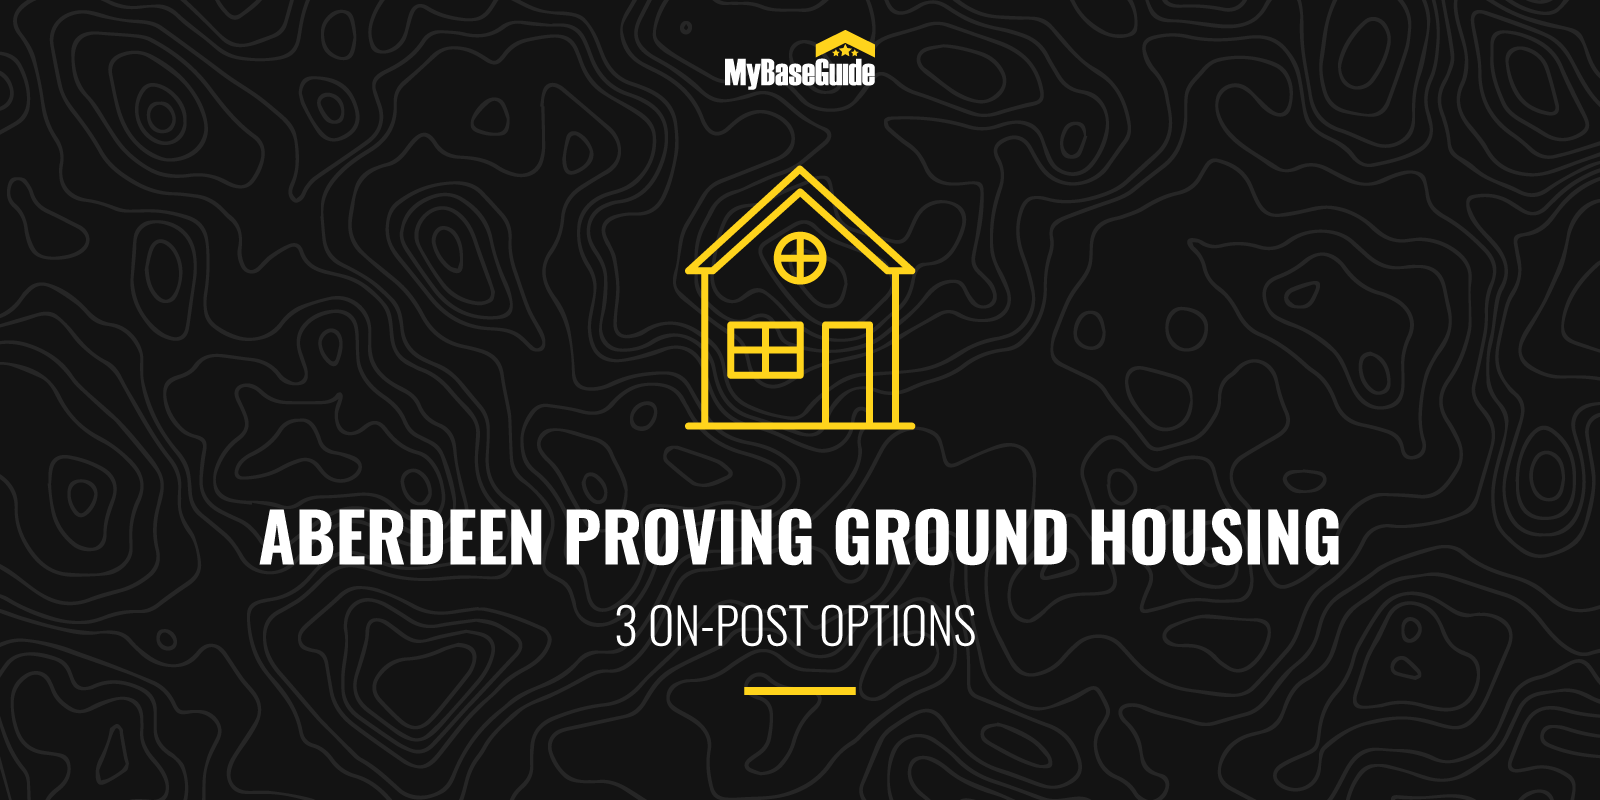 Aberdeen Proving Ground Housing: 3 On-Post Options